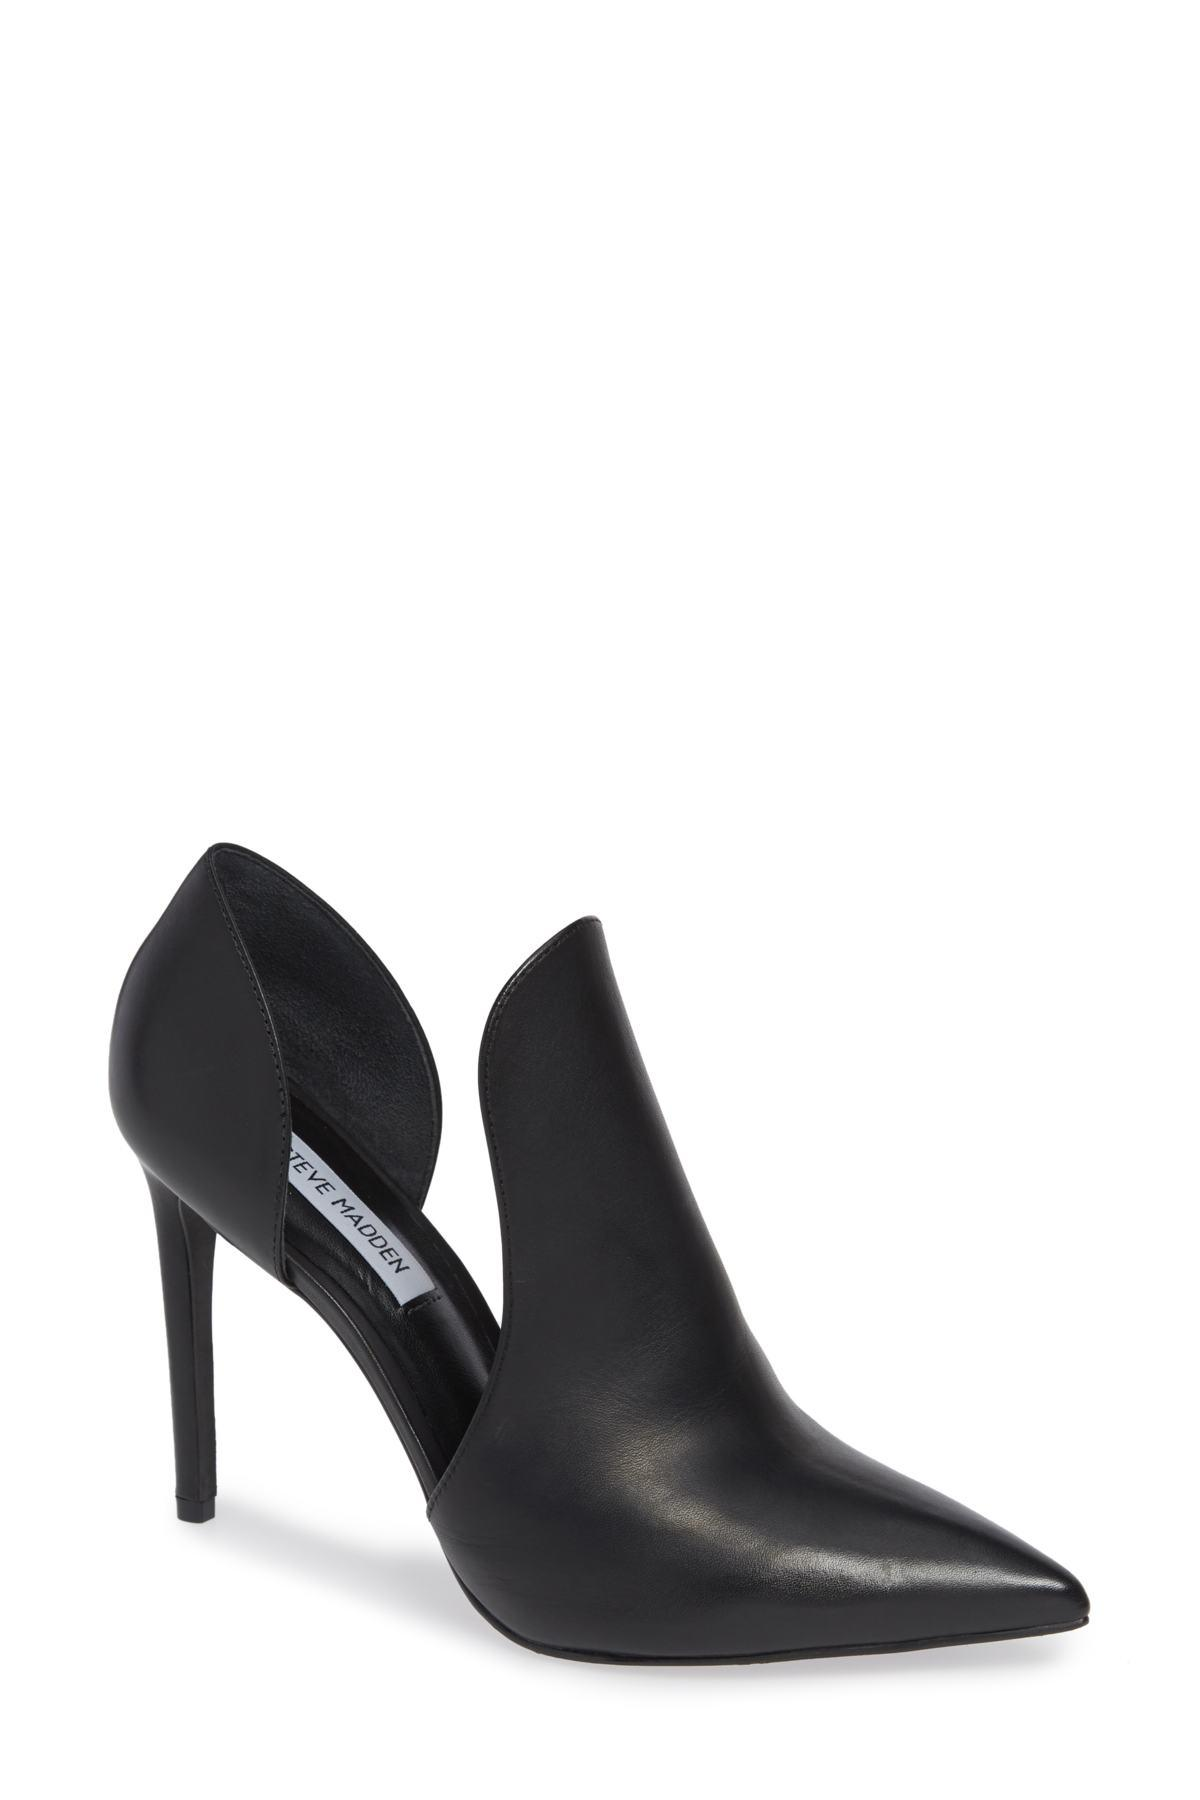 88b061bde9a Lyst - Steve Madden Dolly Pump in Black - Save 90%